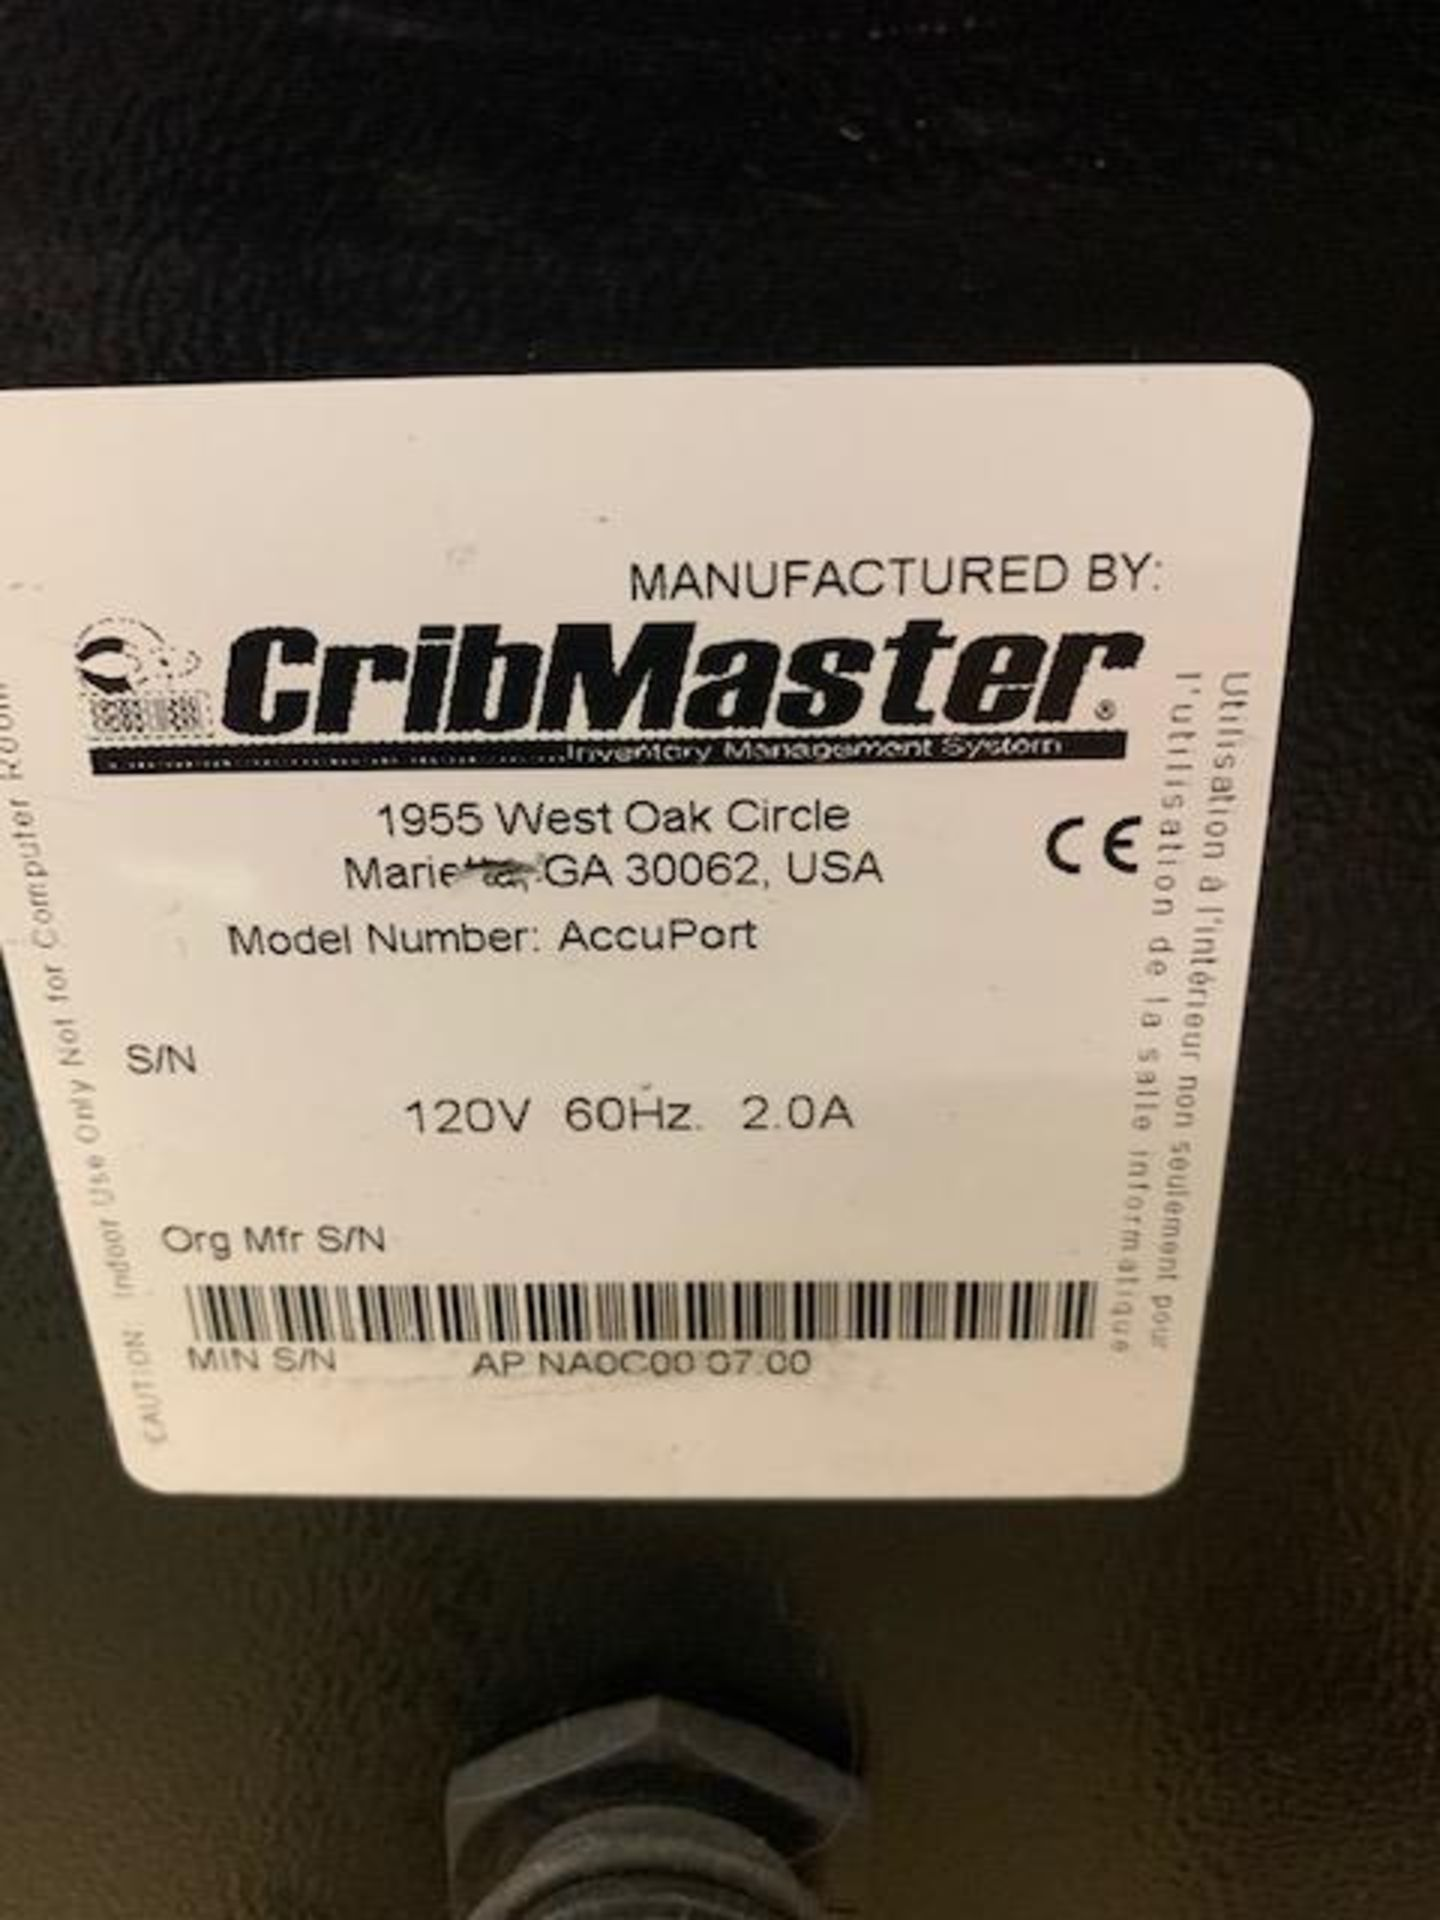 Cribmaster AccuPort - Image 6 of 7